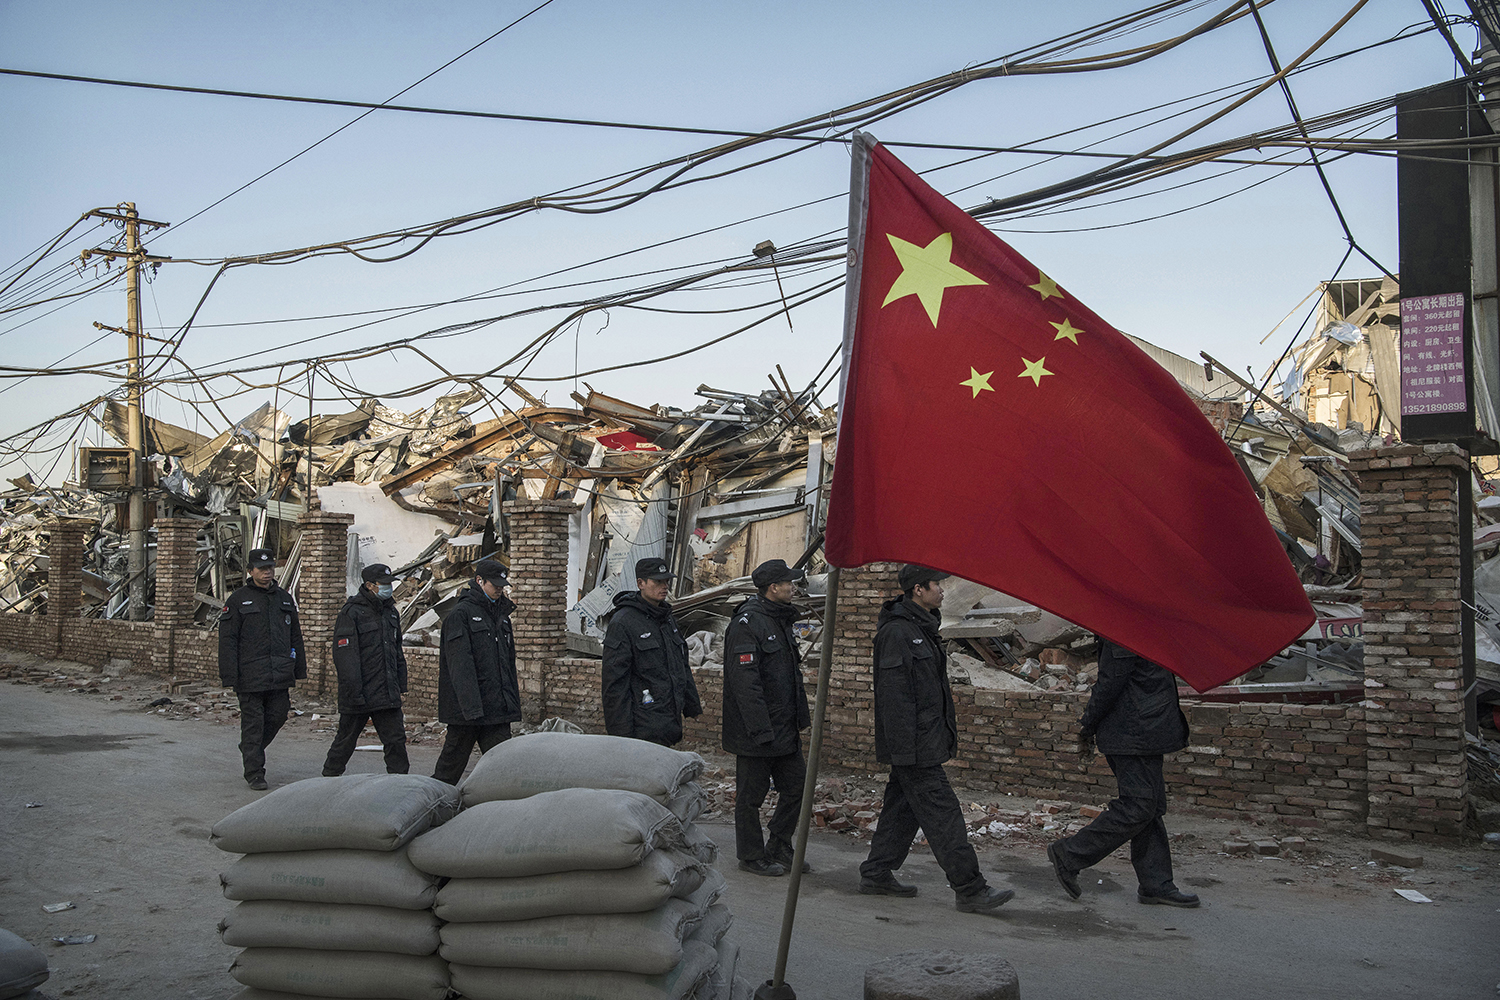 December 6, Chinese police walk in a line past houses and factories demolished by authorities in the Daxing District of Beijing. In recent weeks, thousands of migrant workers have been forcibly evicted in a sweeping government safety campaign following a deadly fire at a housing settlement. (Kevin Frayer/Getty Images)